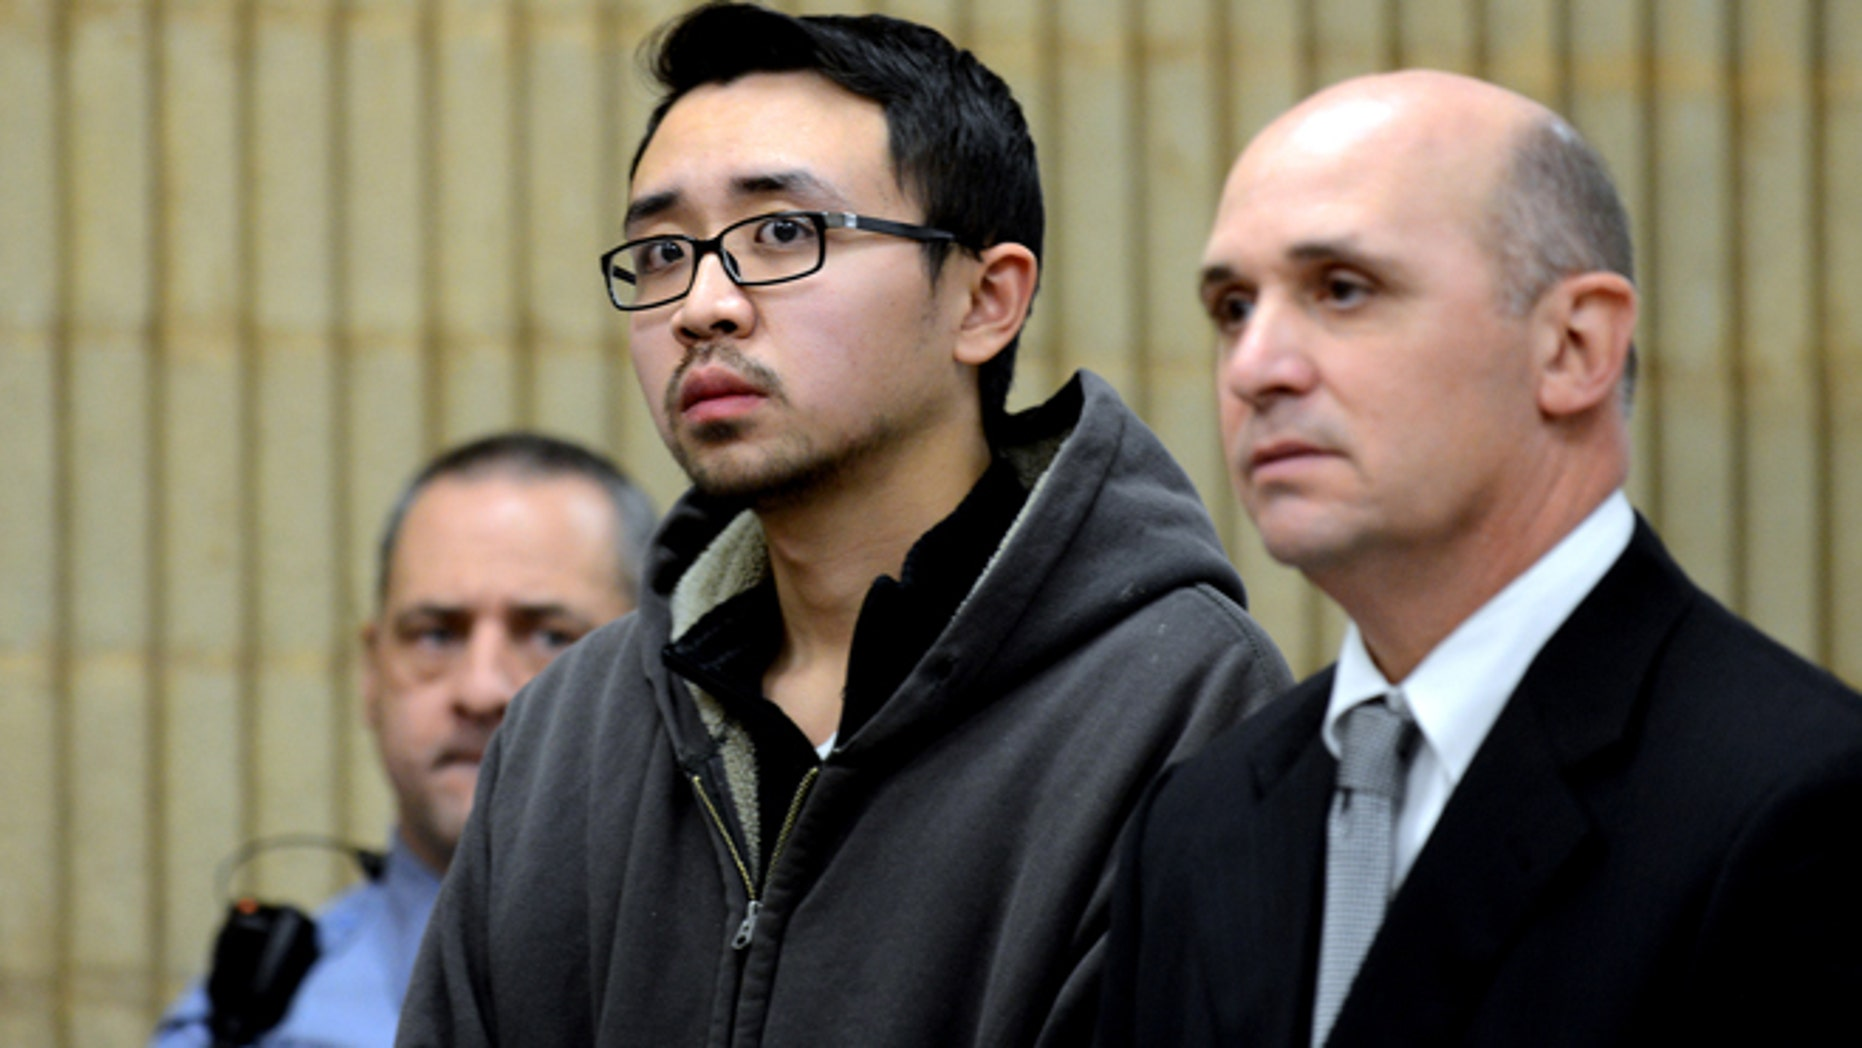 Dec. 4, 2013: University of New Haven student William Dong, 22, of Fairfield, Conn., with assistant public defender Kevin Williams, right, appears during his arraignment.